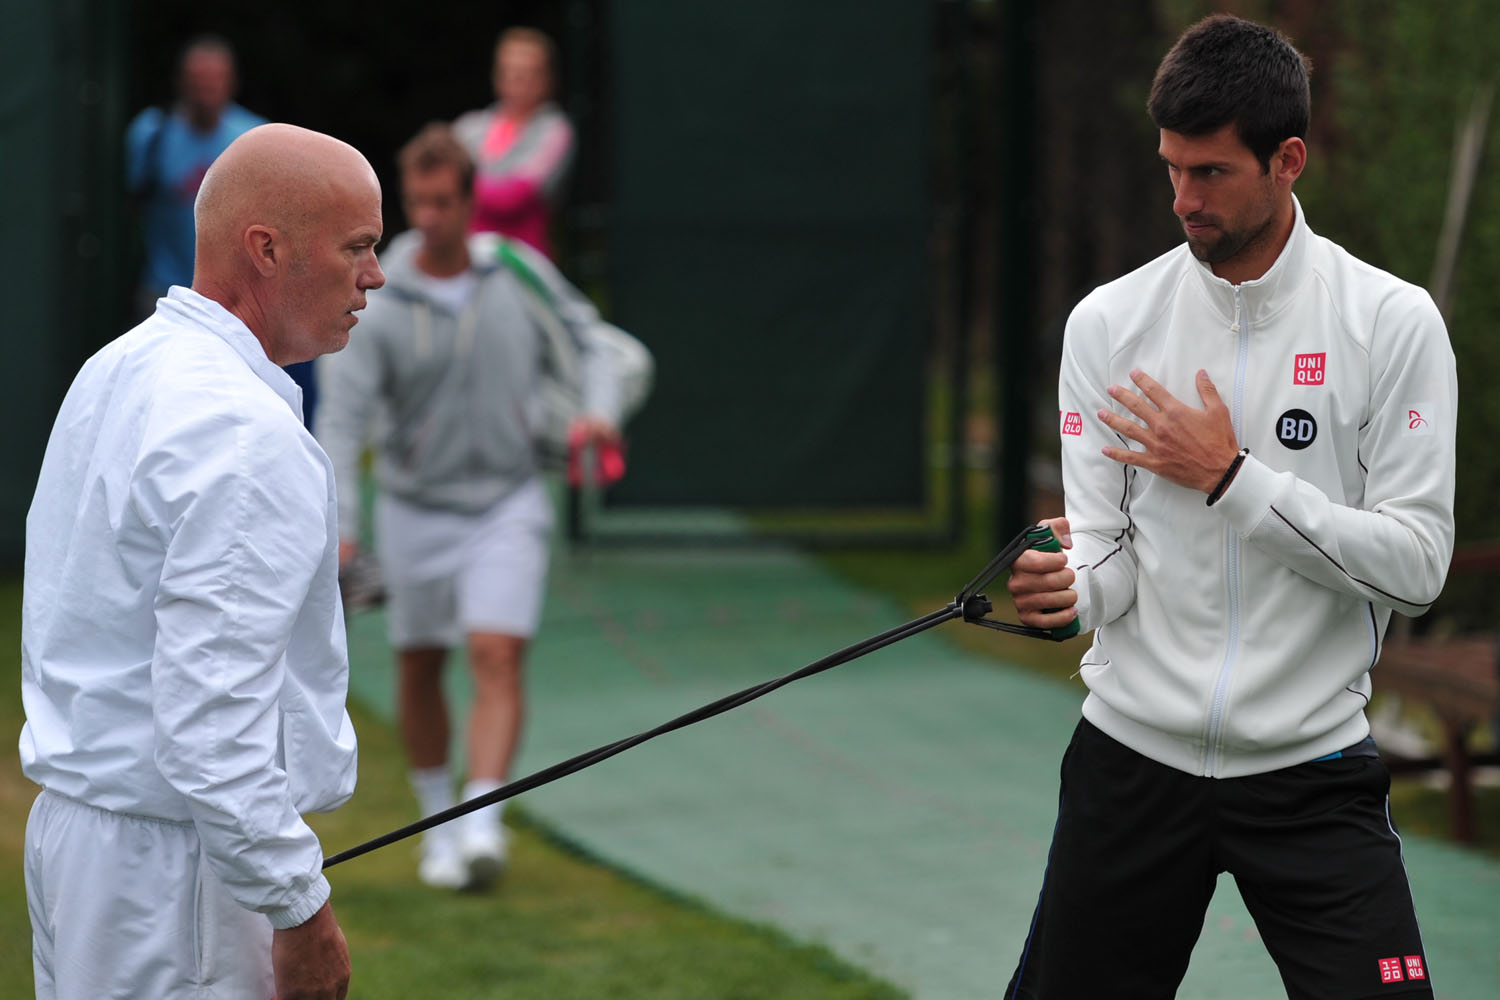 Novak Djokovic works out with a resistance band during a training session at the All England Tennis Club in Wimbledon, southwest London, on June 23, 2013, on the eve of the start of the 2013 Wimbledon Championships.